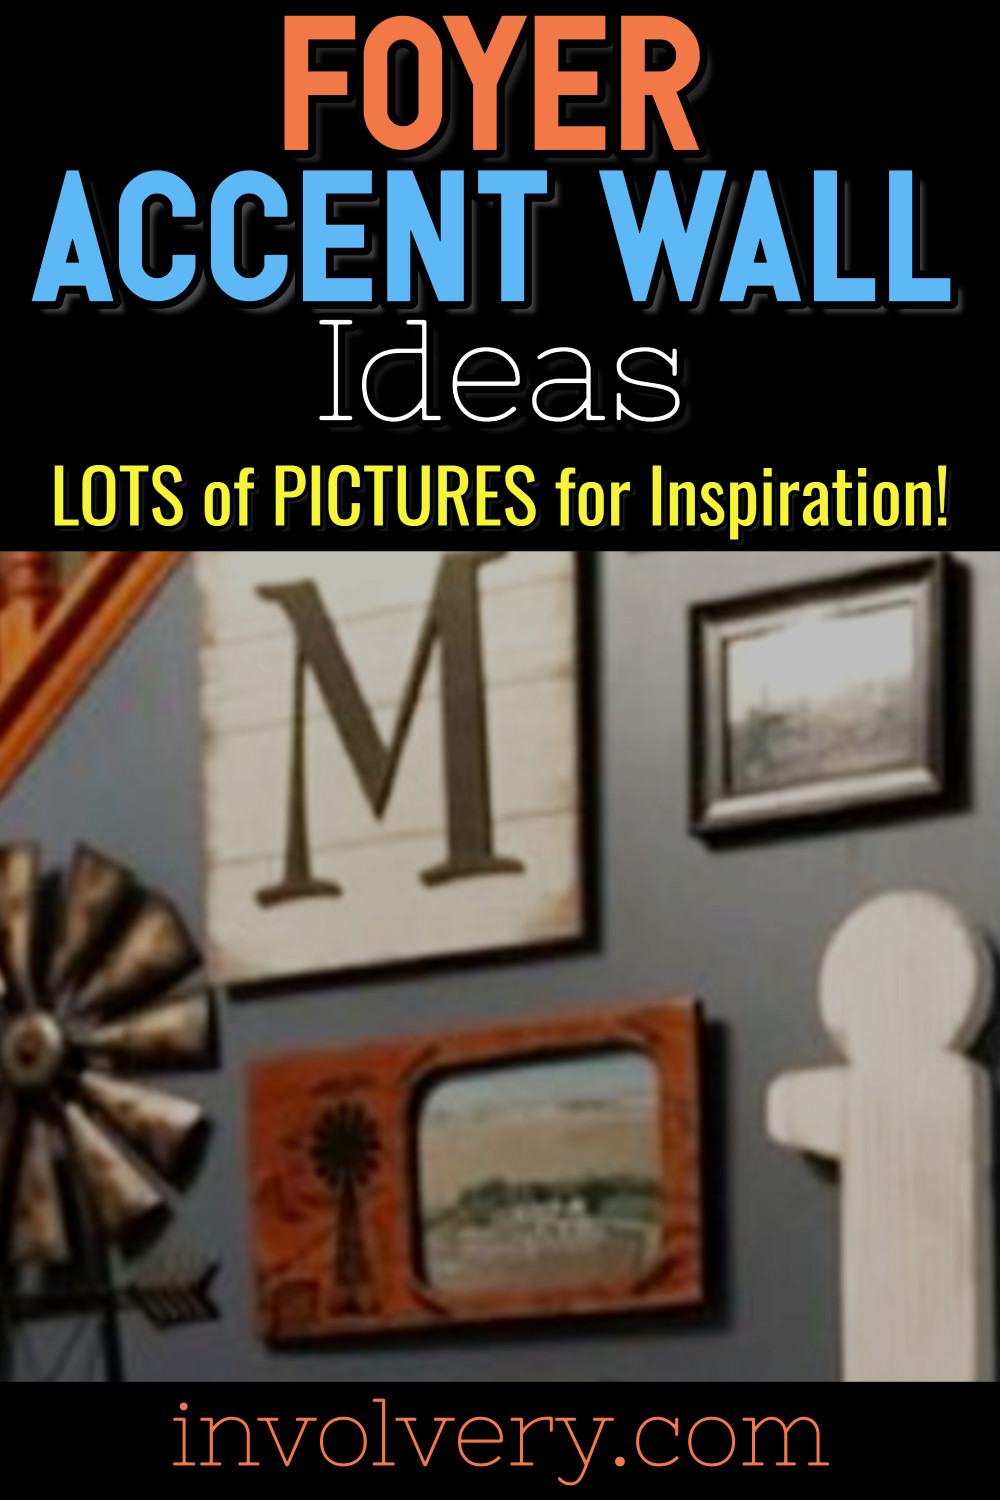 Foyer Accent Wall Ideas - Easy DIY decorating ideas for entry hall wall PICTURES and foyer decor inspiration to copy!  There's even photo wall ideas without frames for your entryway wall and staircase accent wall ideas.  All these foyer wall decor ideas are GORGEOUS and easy home decor ideas to dress up the entryway in your home. I really love the welcome wall decor for small foyers - so pretty!